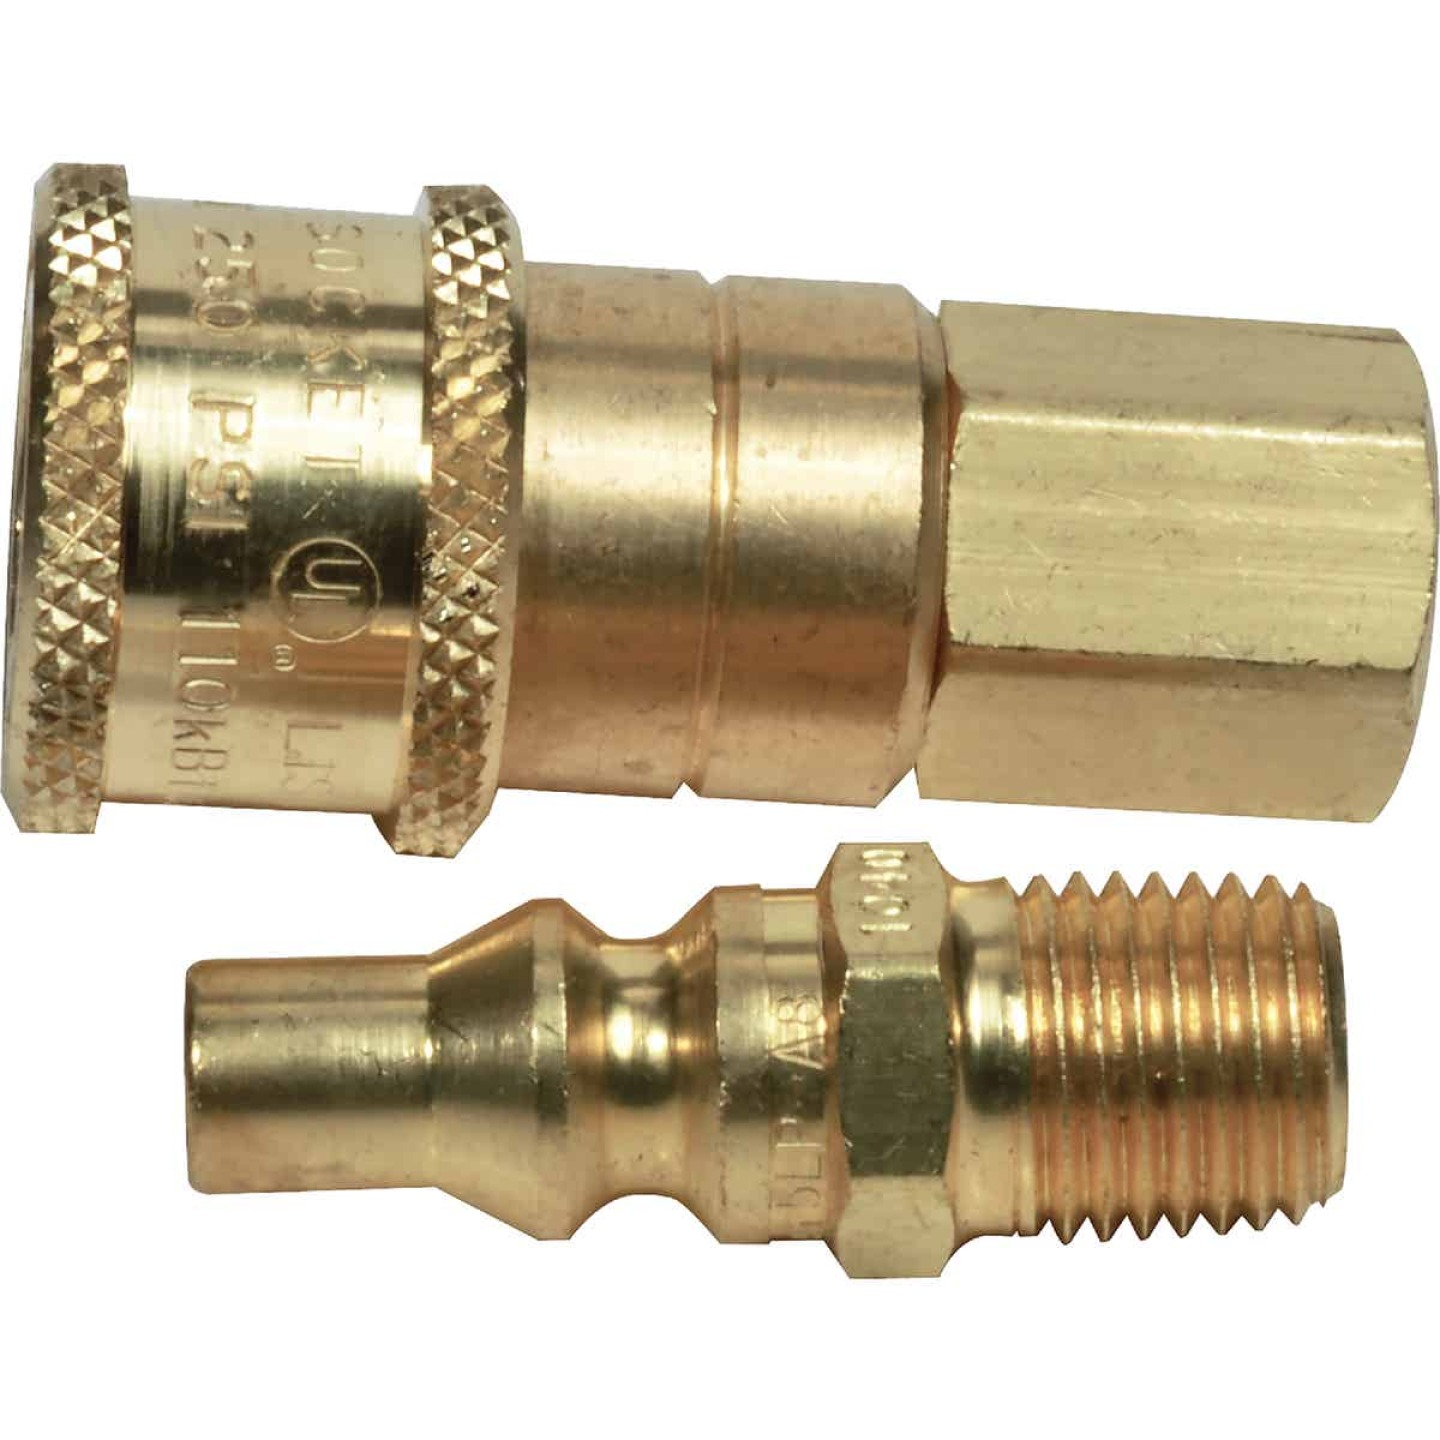 MR. HEATER 1/4 In. Brass Gas Connector Image 1